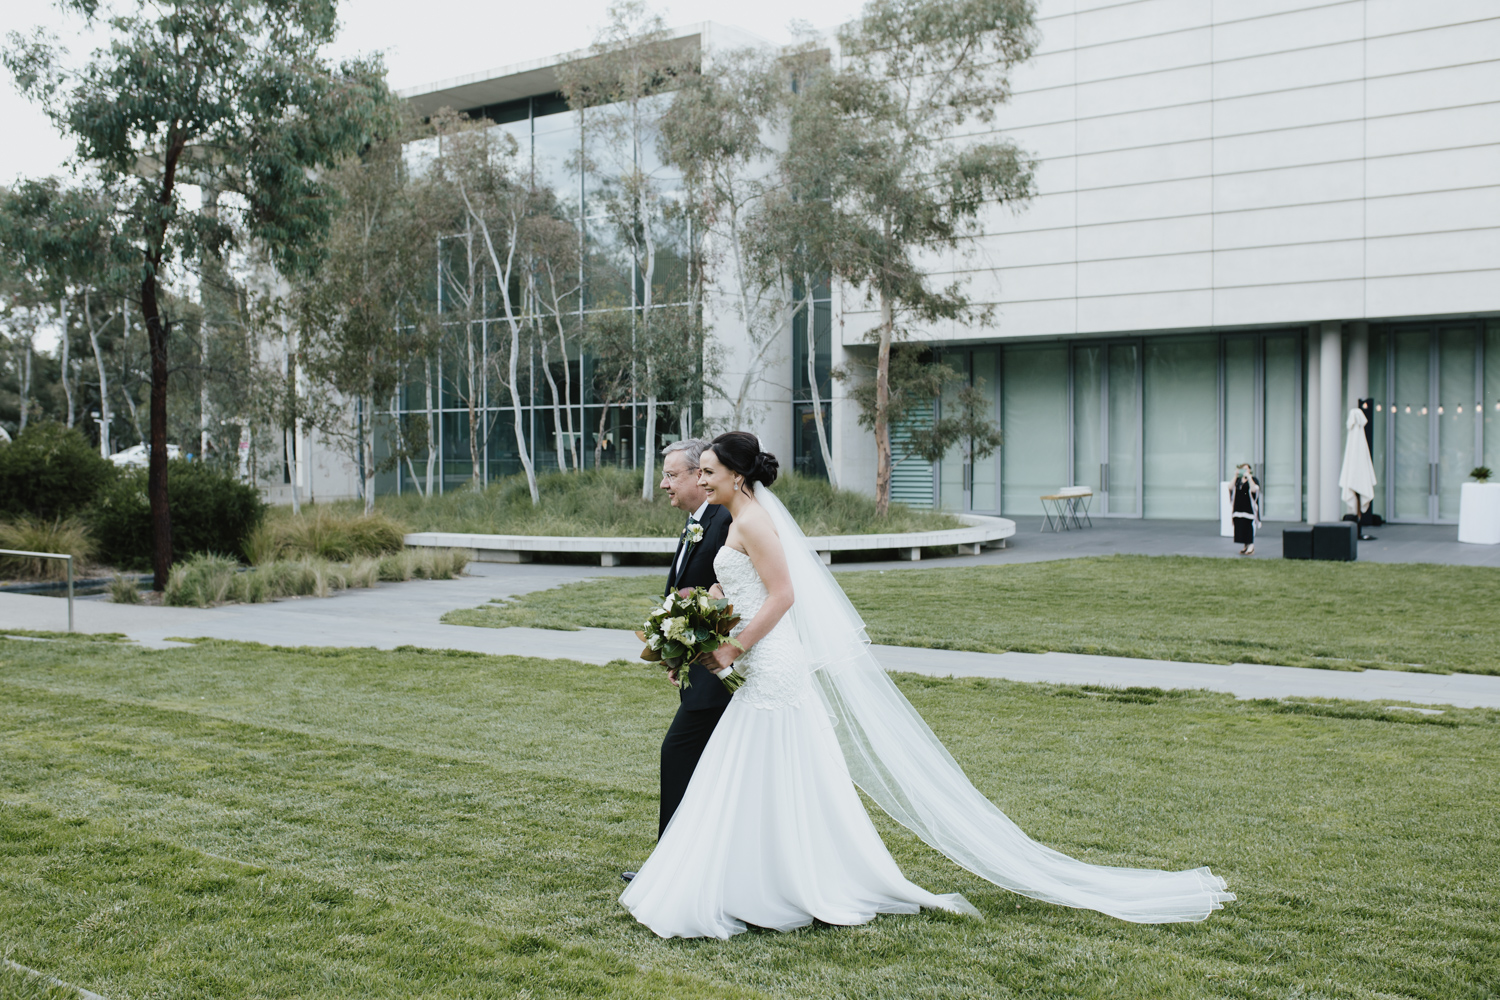 Australian Terrace / National Gallery of Australia wedding Canberra, photography by Jenny Wu Straight No Chaser